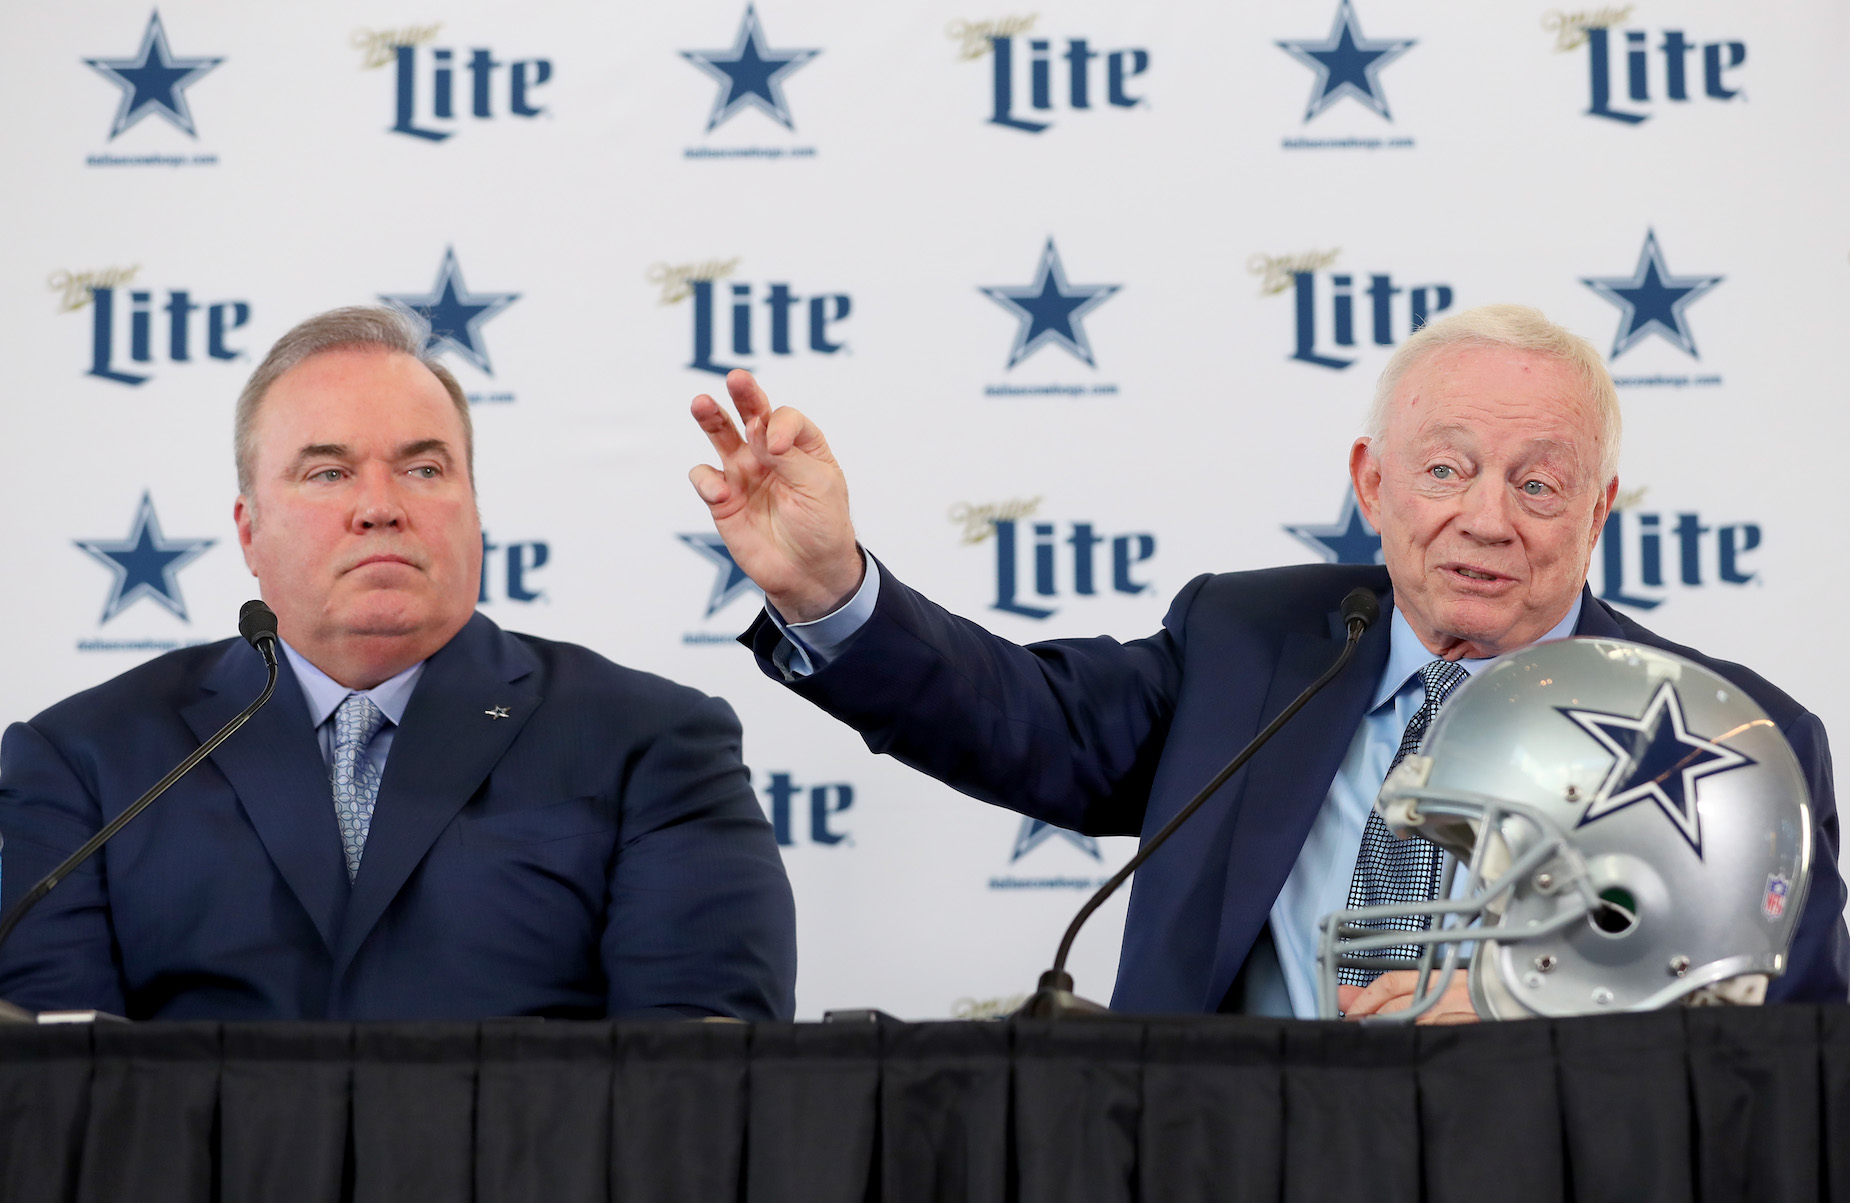 Jerry Jones may have hired Mike McCarthy due to some bad advice from an NFL insider.